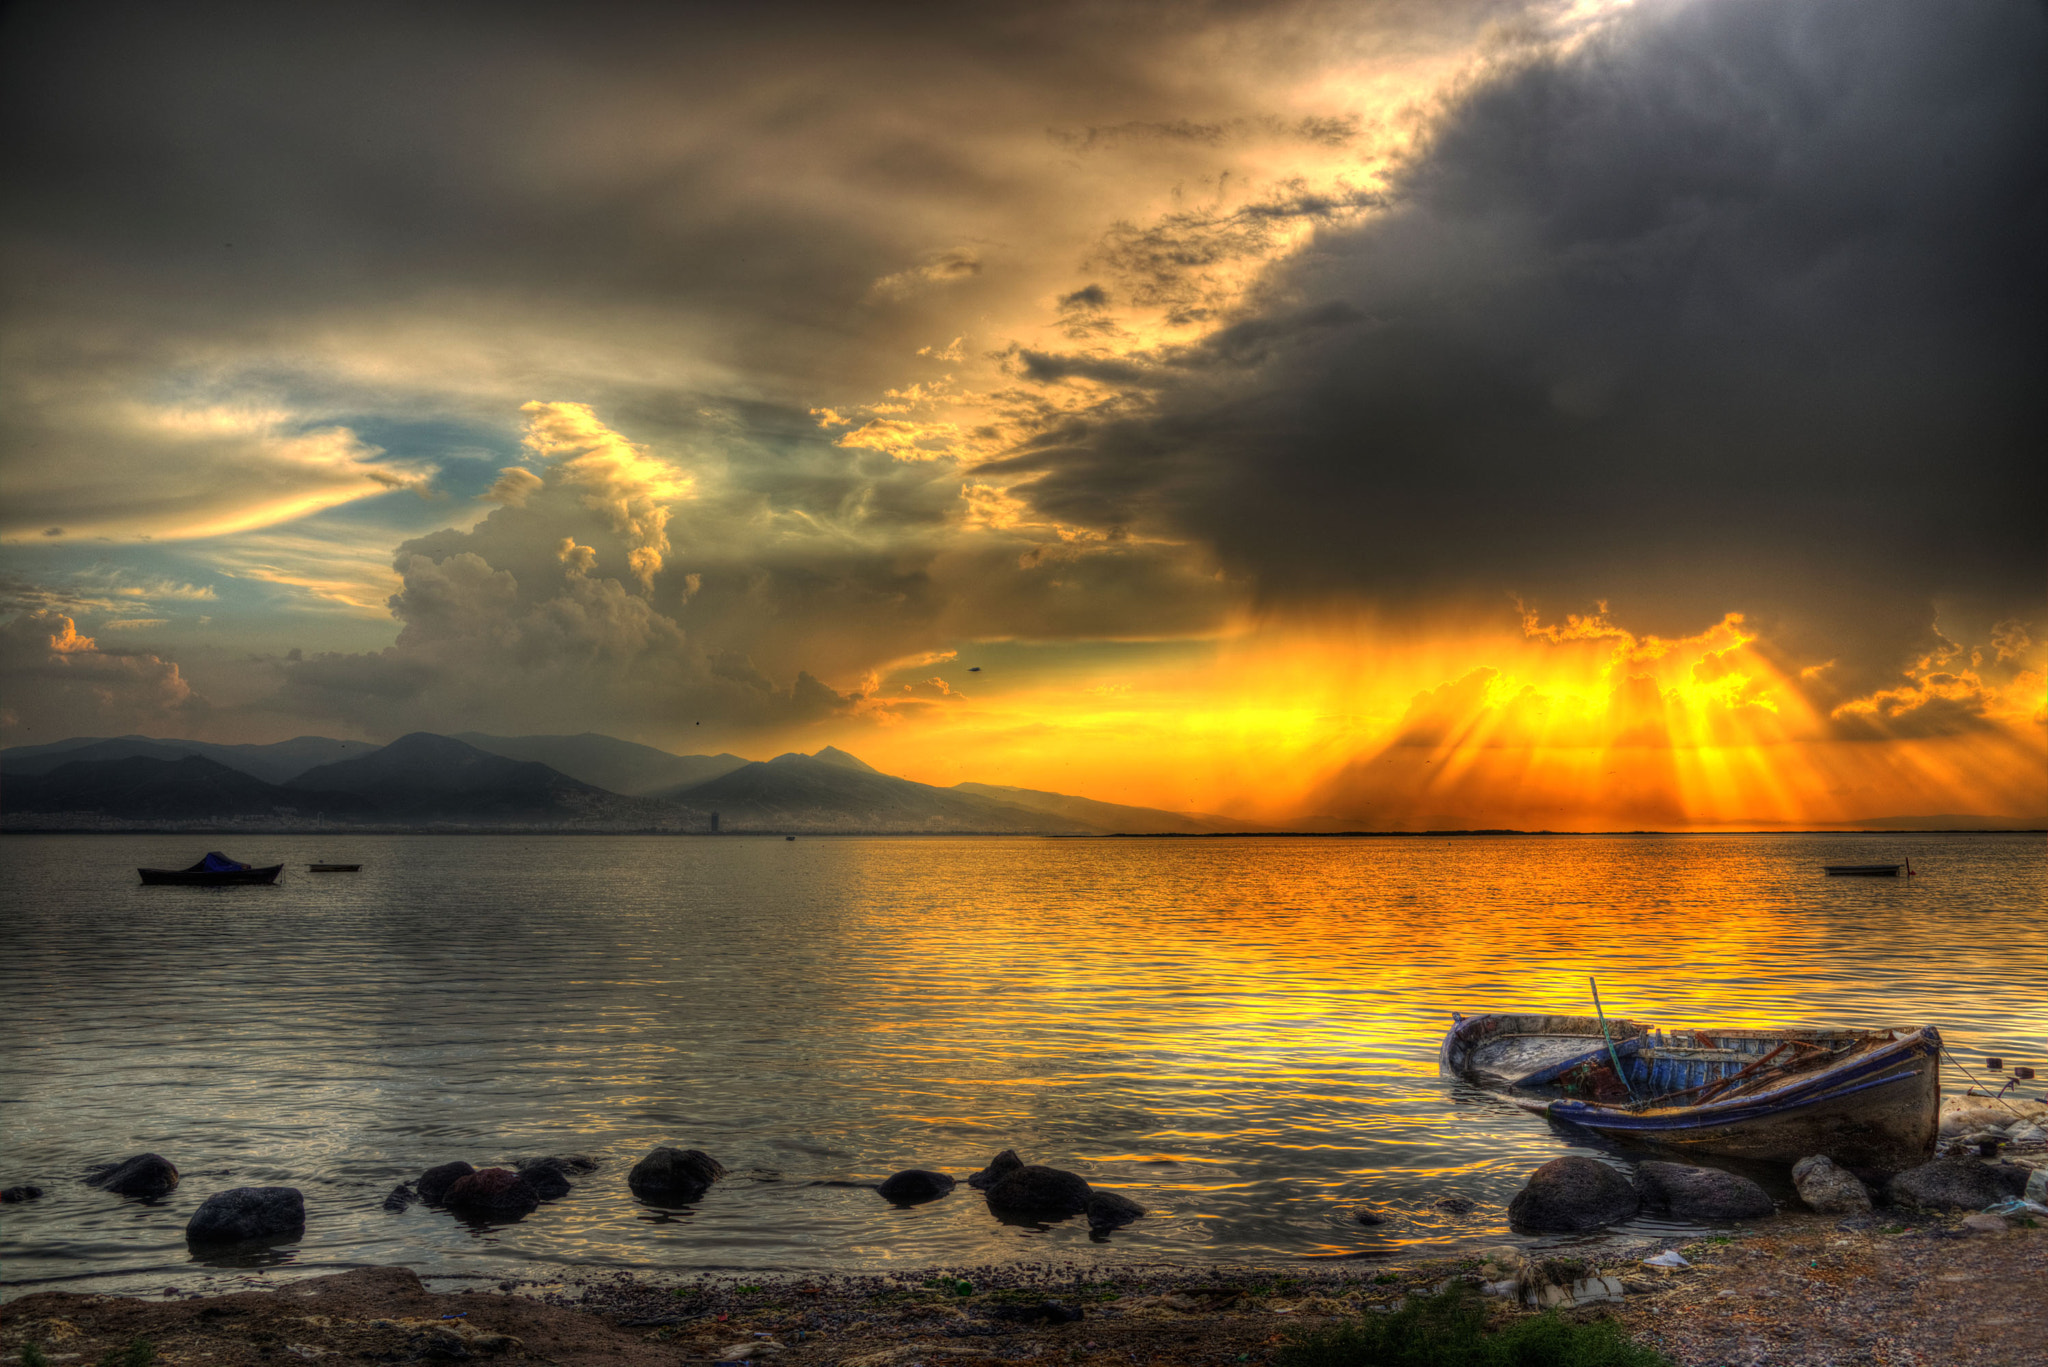 Photograph sunset in turkey by Özer Kızıldağ on 500px